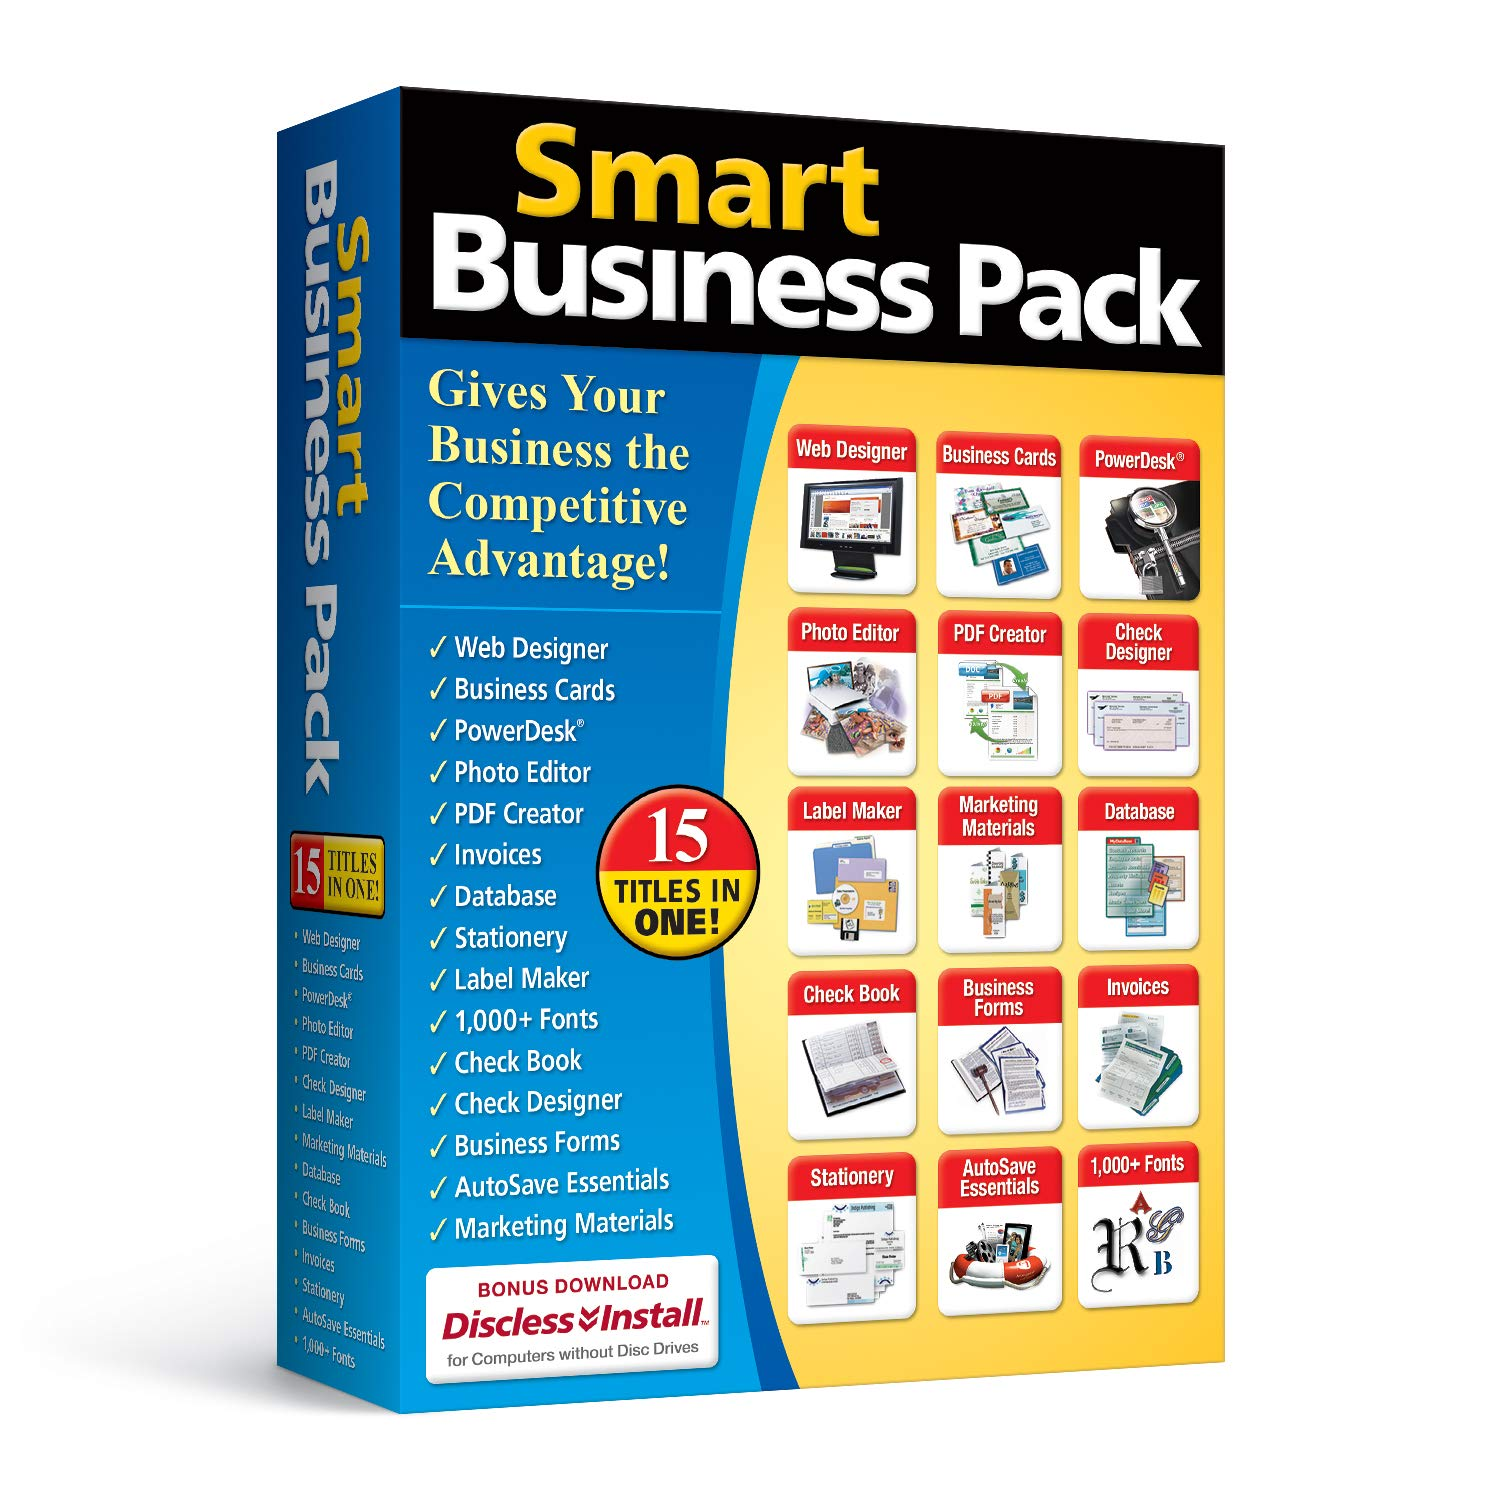 Smart Business Pack by Avanquest